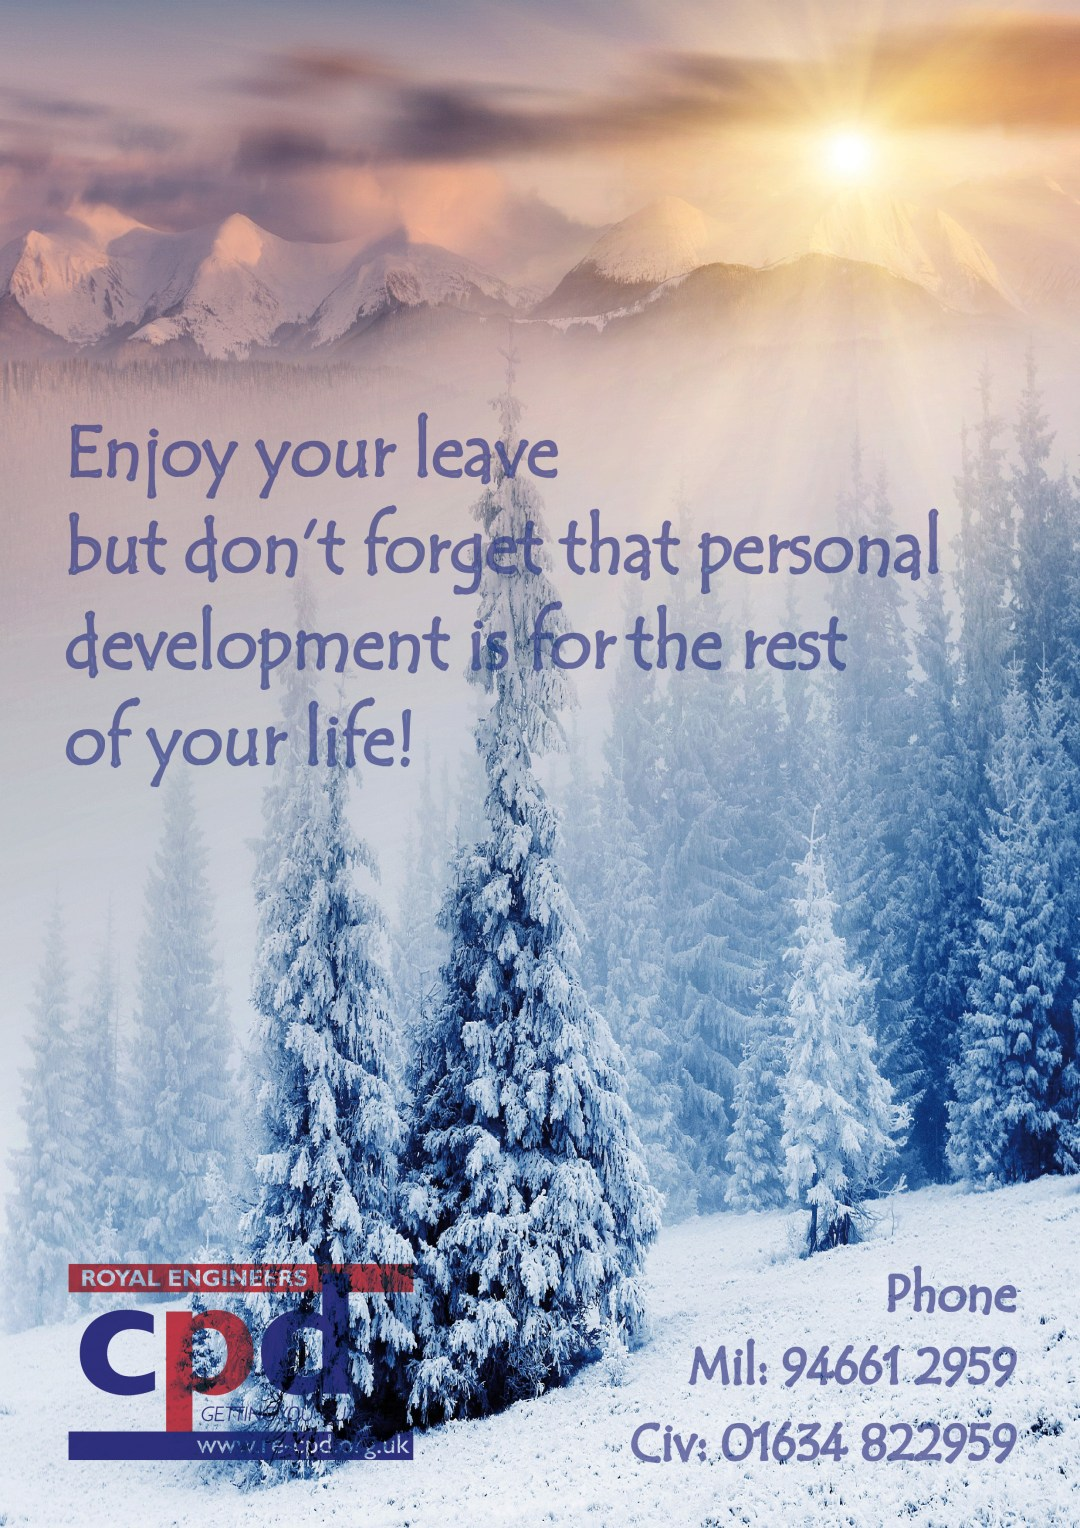 Enjoy your leave